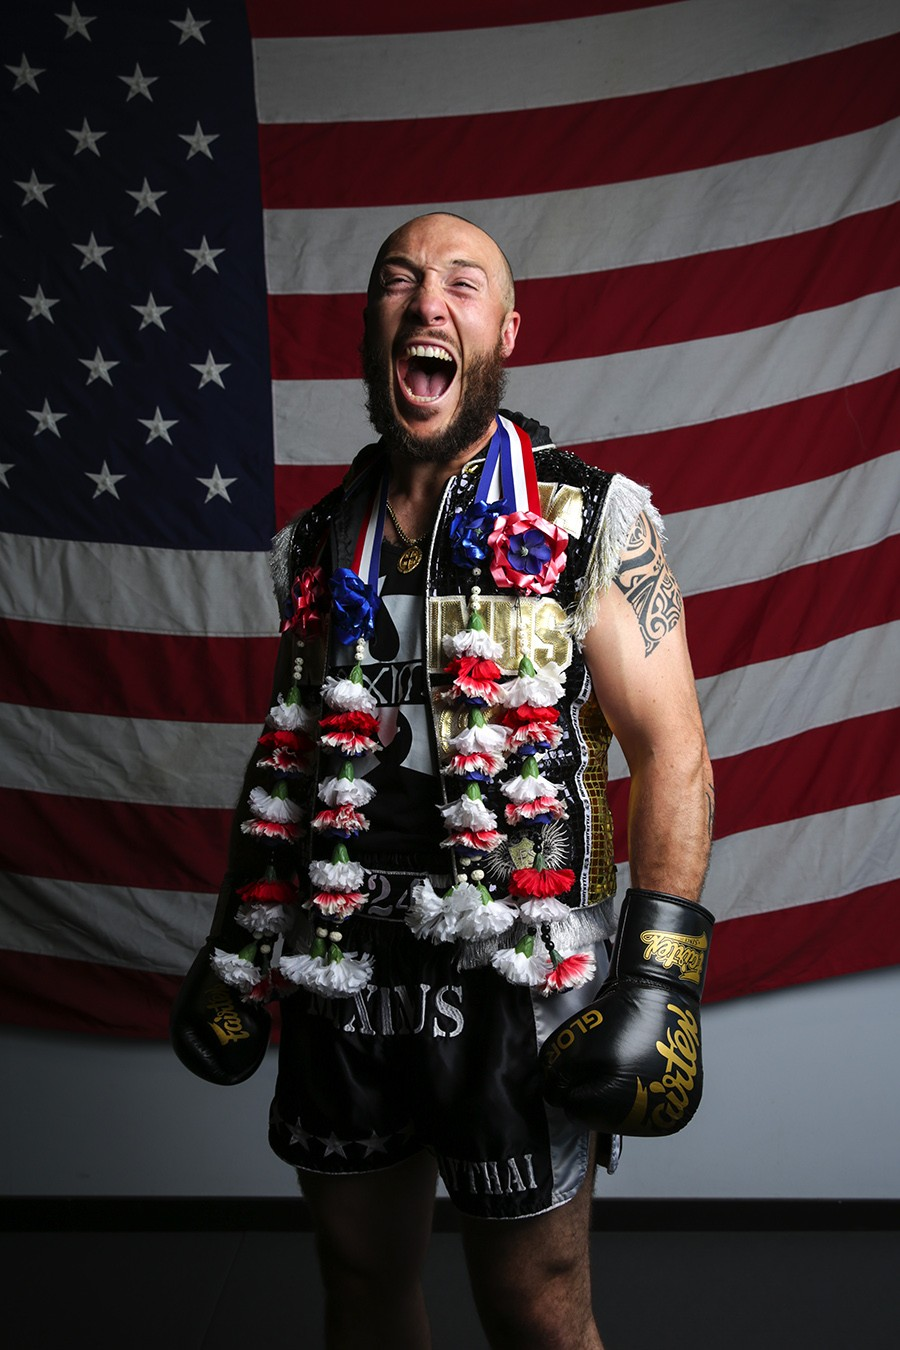 """Richard Abraham, 33, professional fighter and owner of Maximus Muay Thai and Fitness - """"This year, we took seven people to the TBAs [Thai Boxing Association tournament], which is the biggest Muay Thai Tournament in North America, and five of our guys won. We killed it. In that [training] camp, I really gave to them the most I've ever given to any camp that I've ever had, even as a fighter. I was physically exhausted after; I'll never forget that. I needed a week just to myself. I felt like I just went through a fight. But with those guys, I have spent so much time, not only physically training them, but mentally and emotionally preparing them for battle. Just having talks, you know, night and day on the phone, calling them in the morning like, 'Hey, you doing OK?' Just making sure that their mind frame was ready and their visualization was on point. I felt like I figured what it takes to be a good coach. I grew up training myself, so this was very different."""" - GEOFF STELLFOX"""